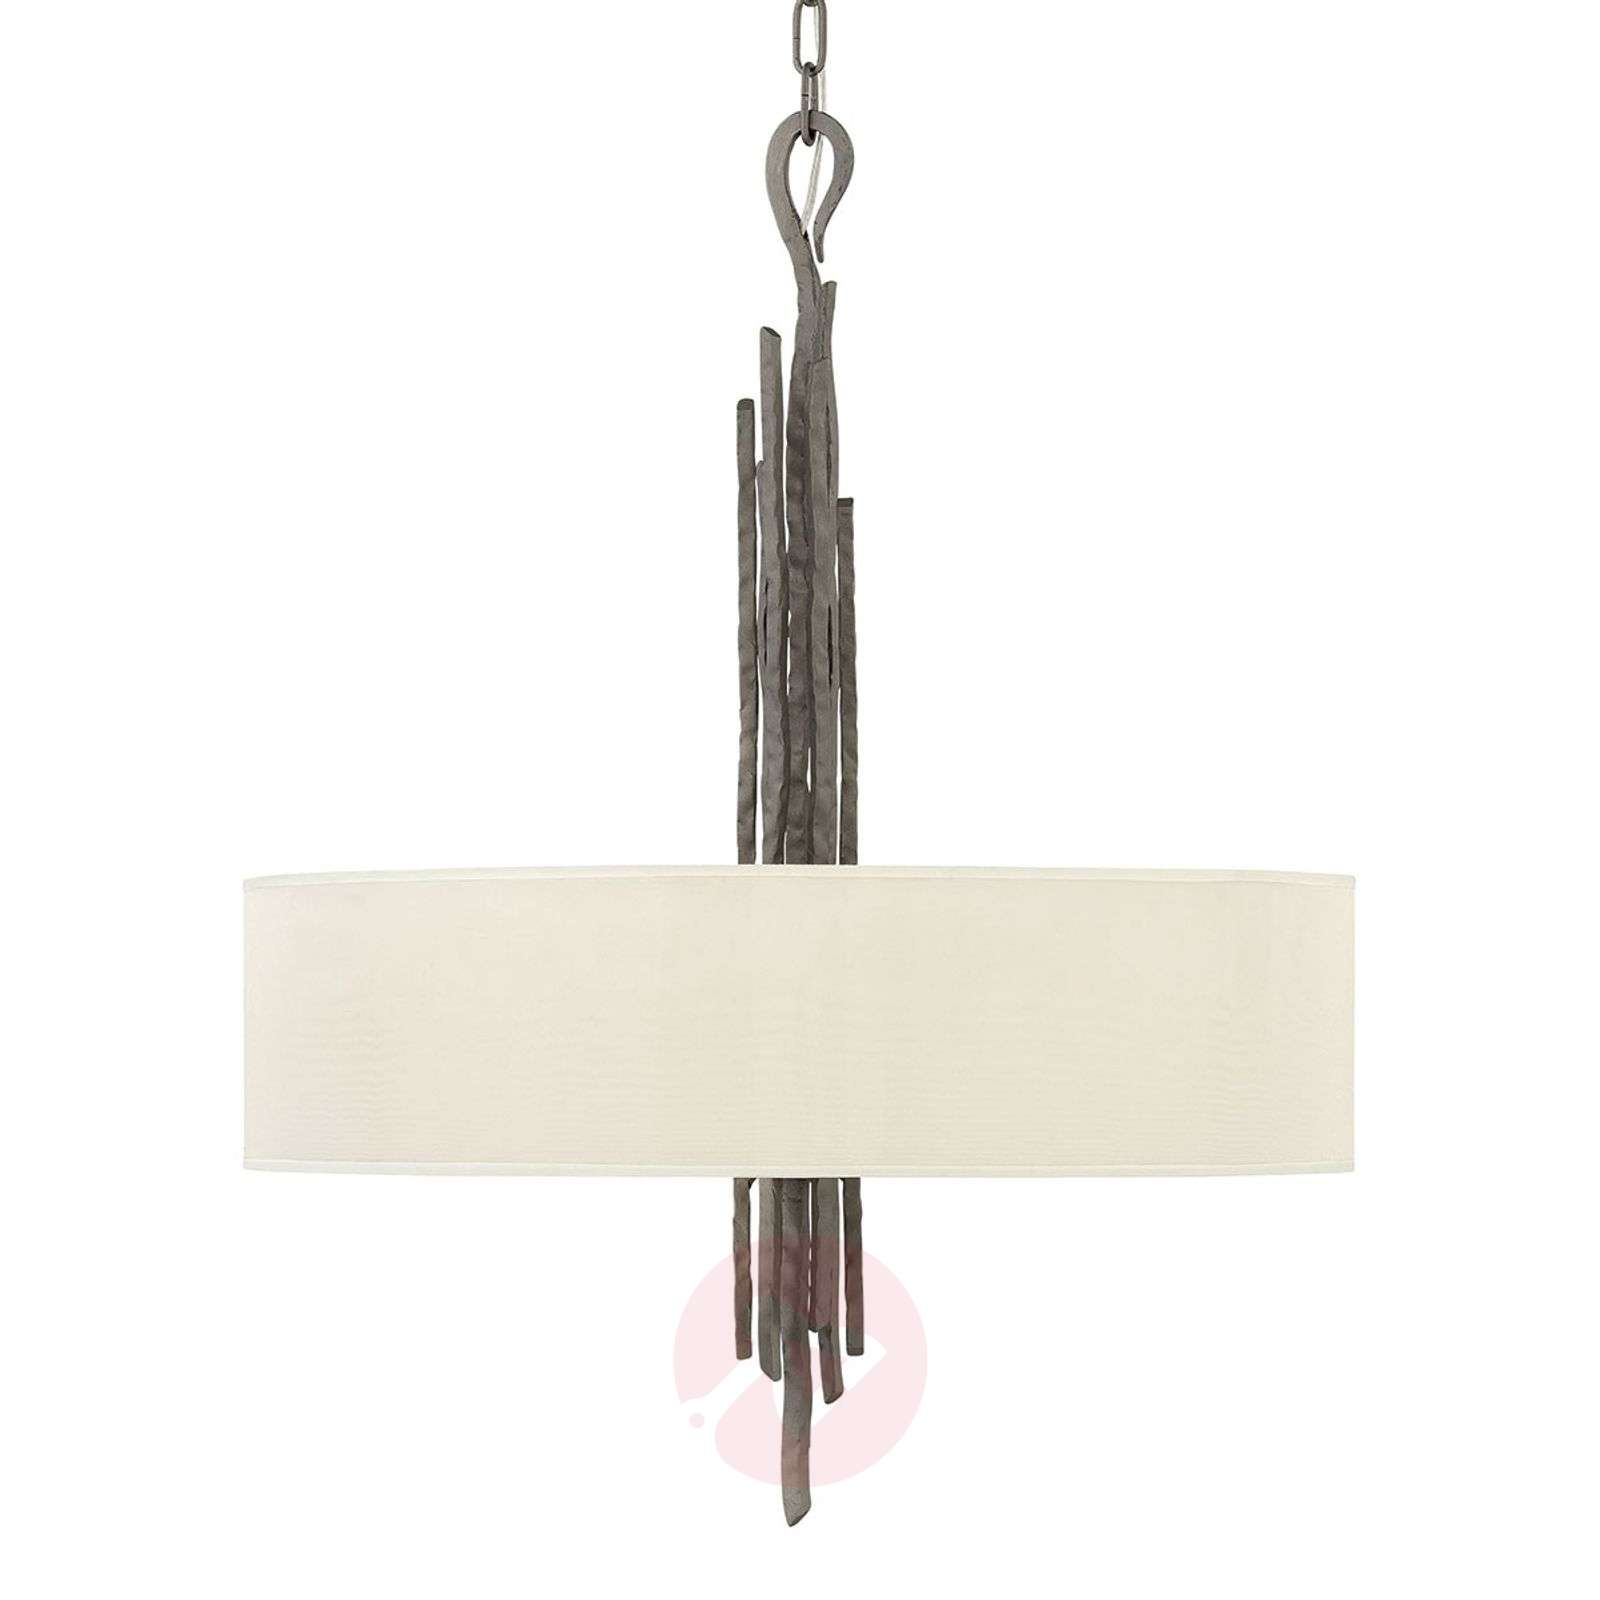 Fabric hanging light Spyre, anthracite-3048924-01